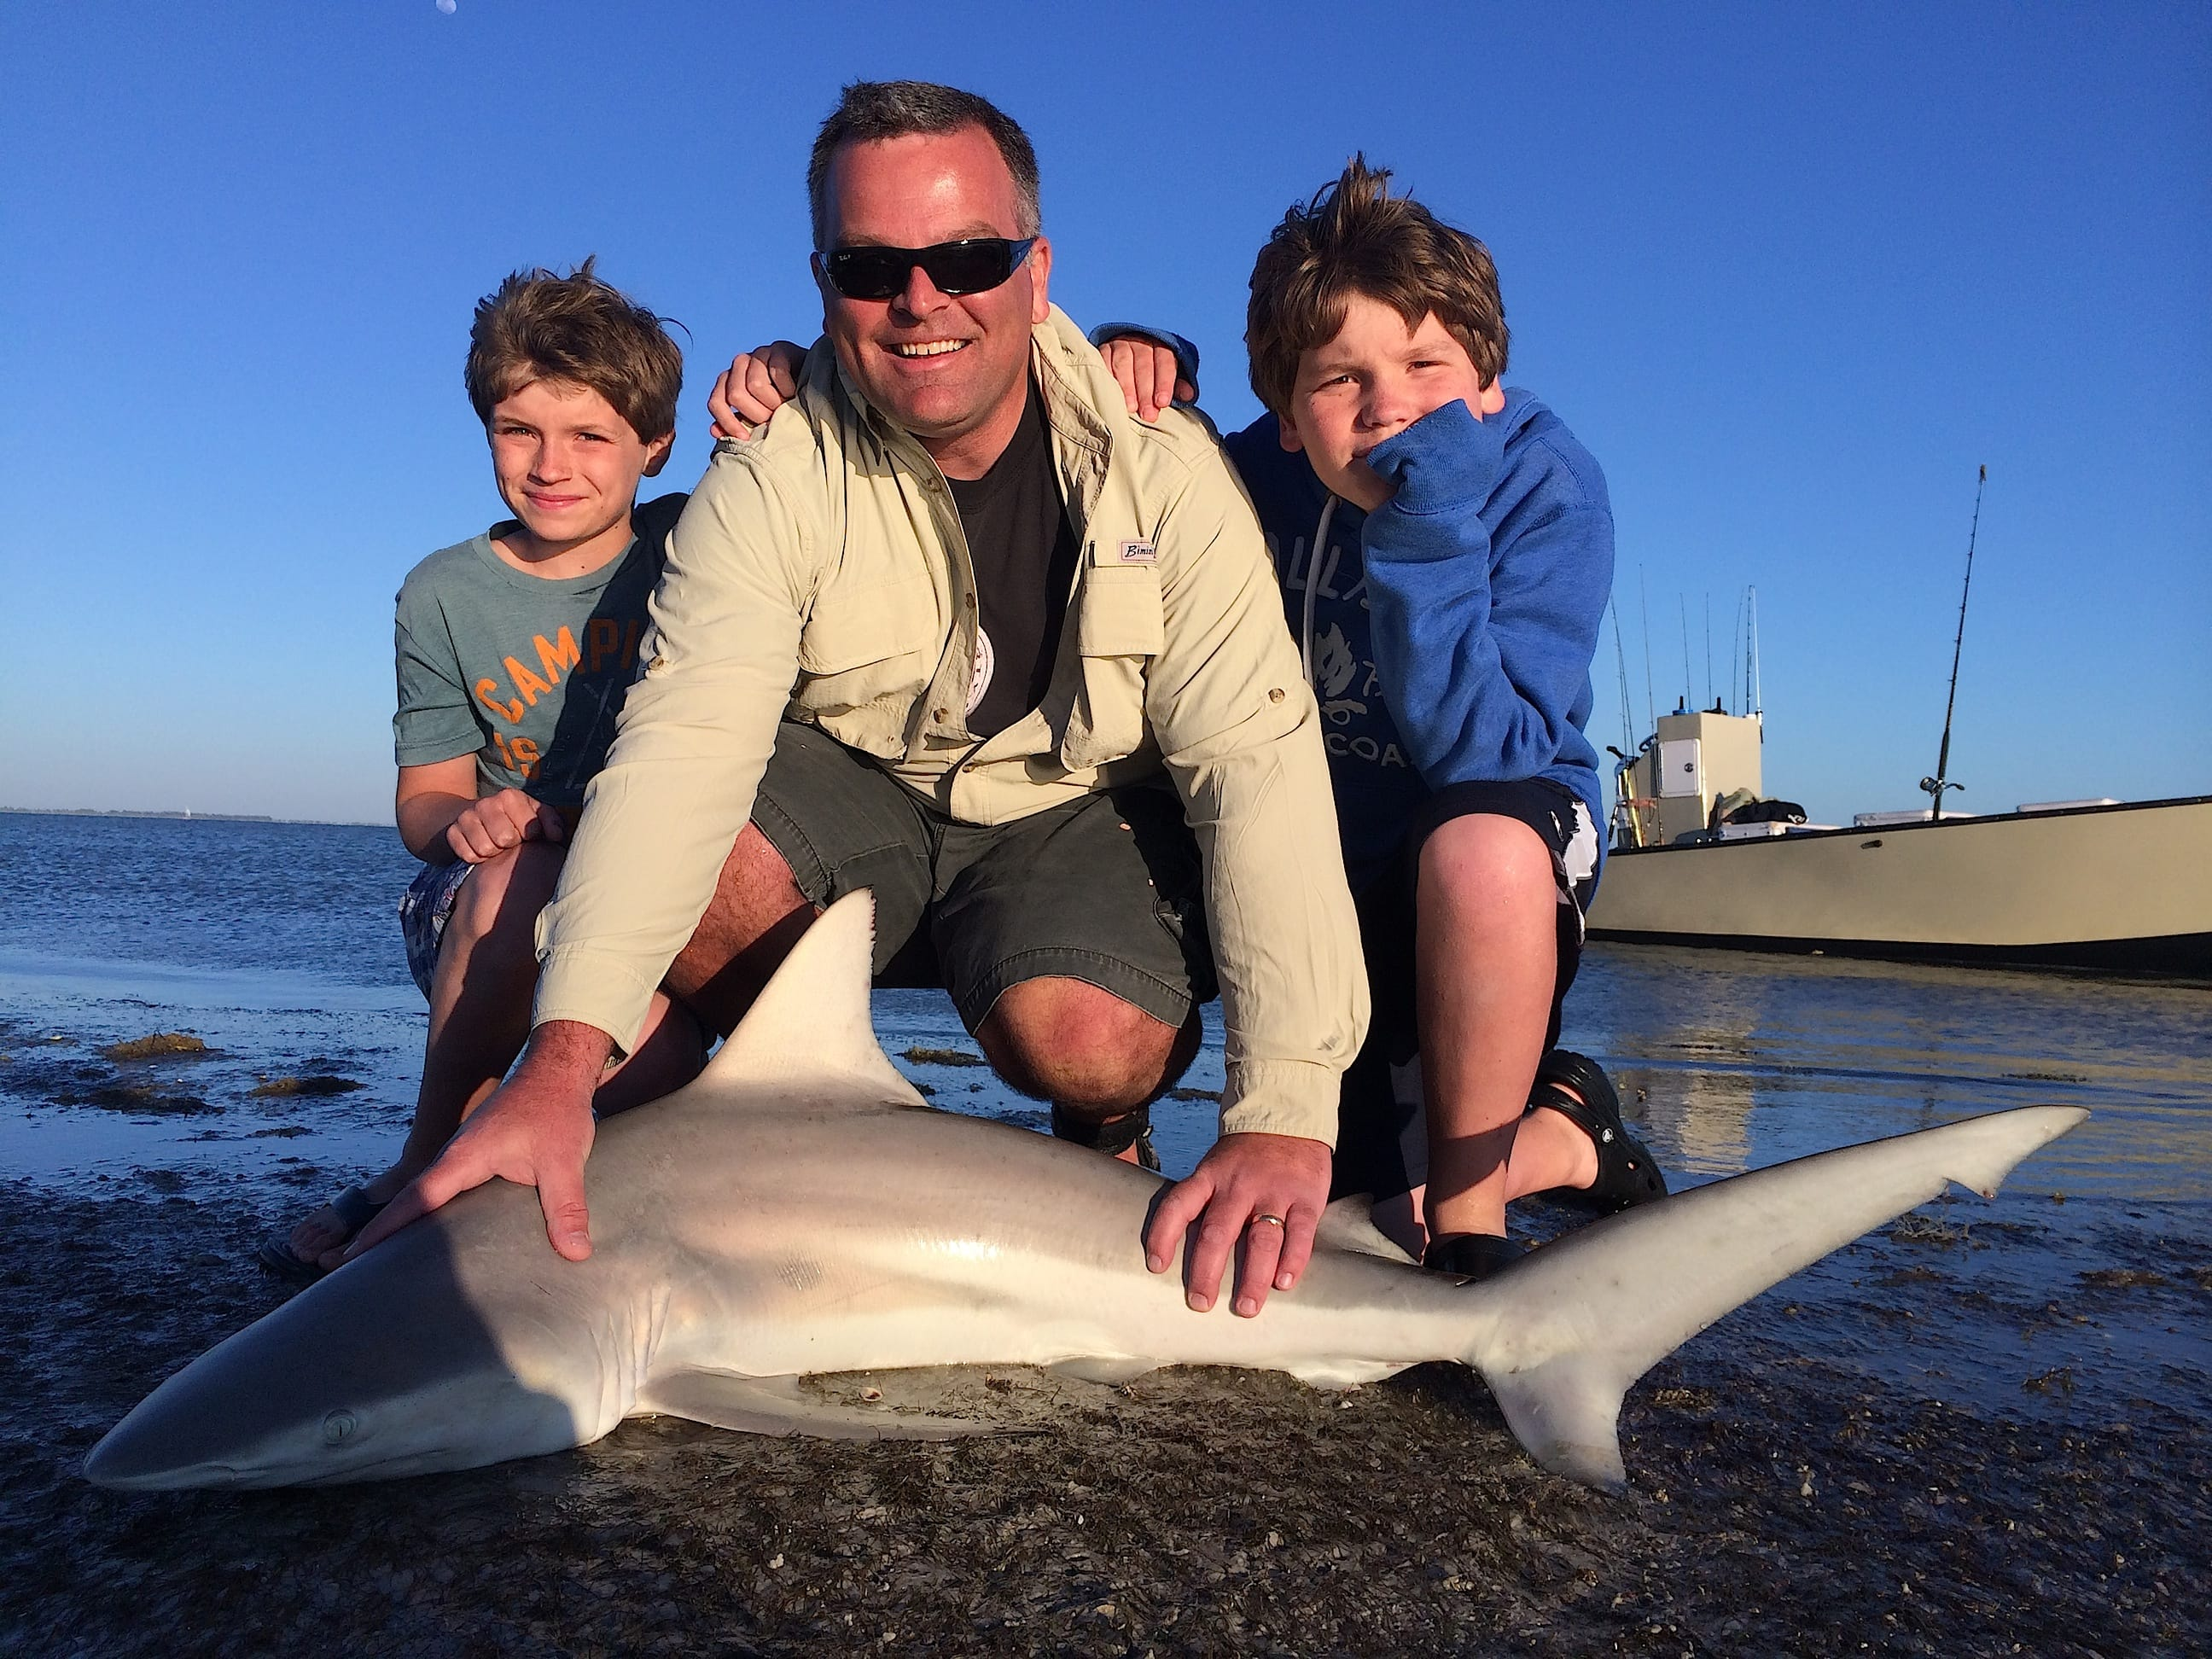 Fort myers fishing report 2 21 15 shark fortmyers for Ft myers fishing report